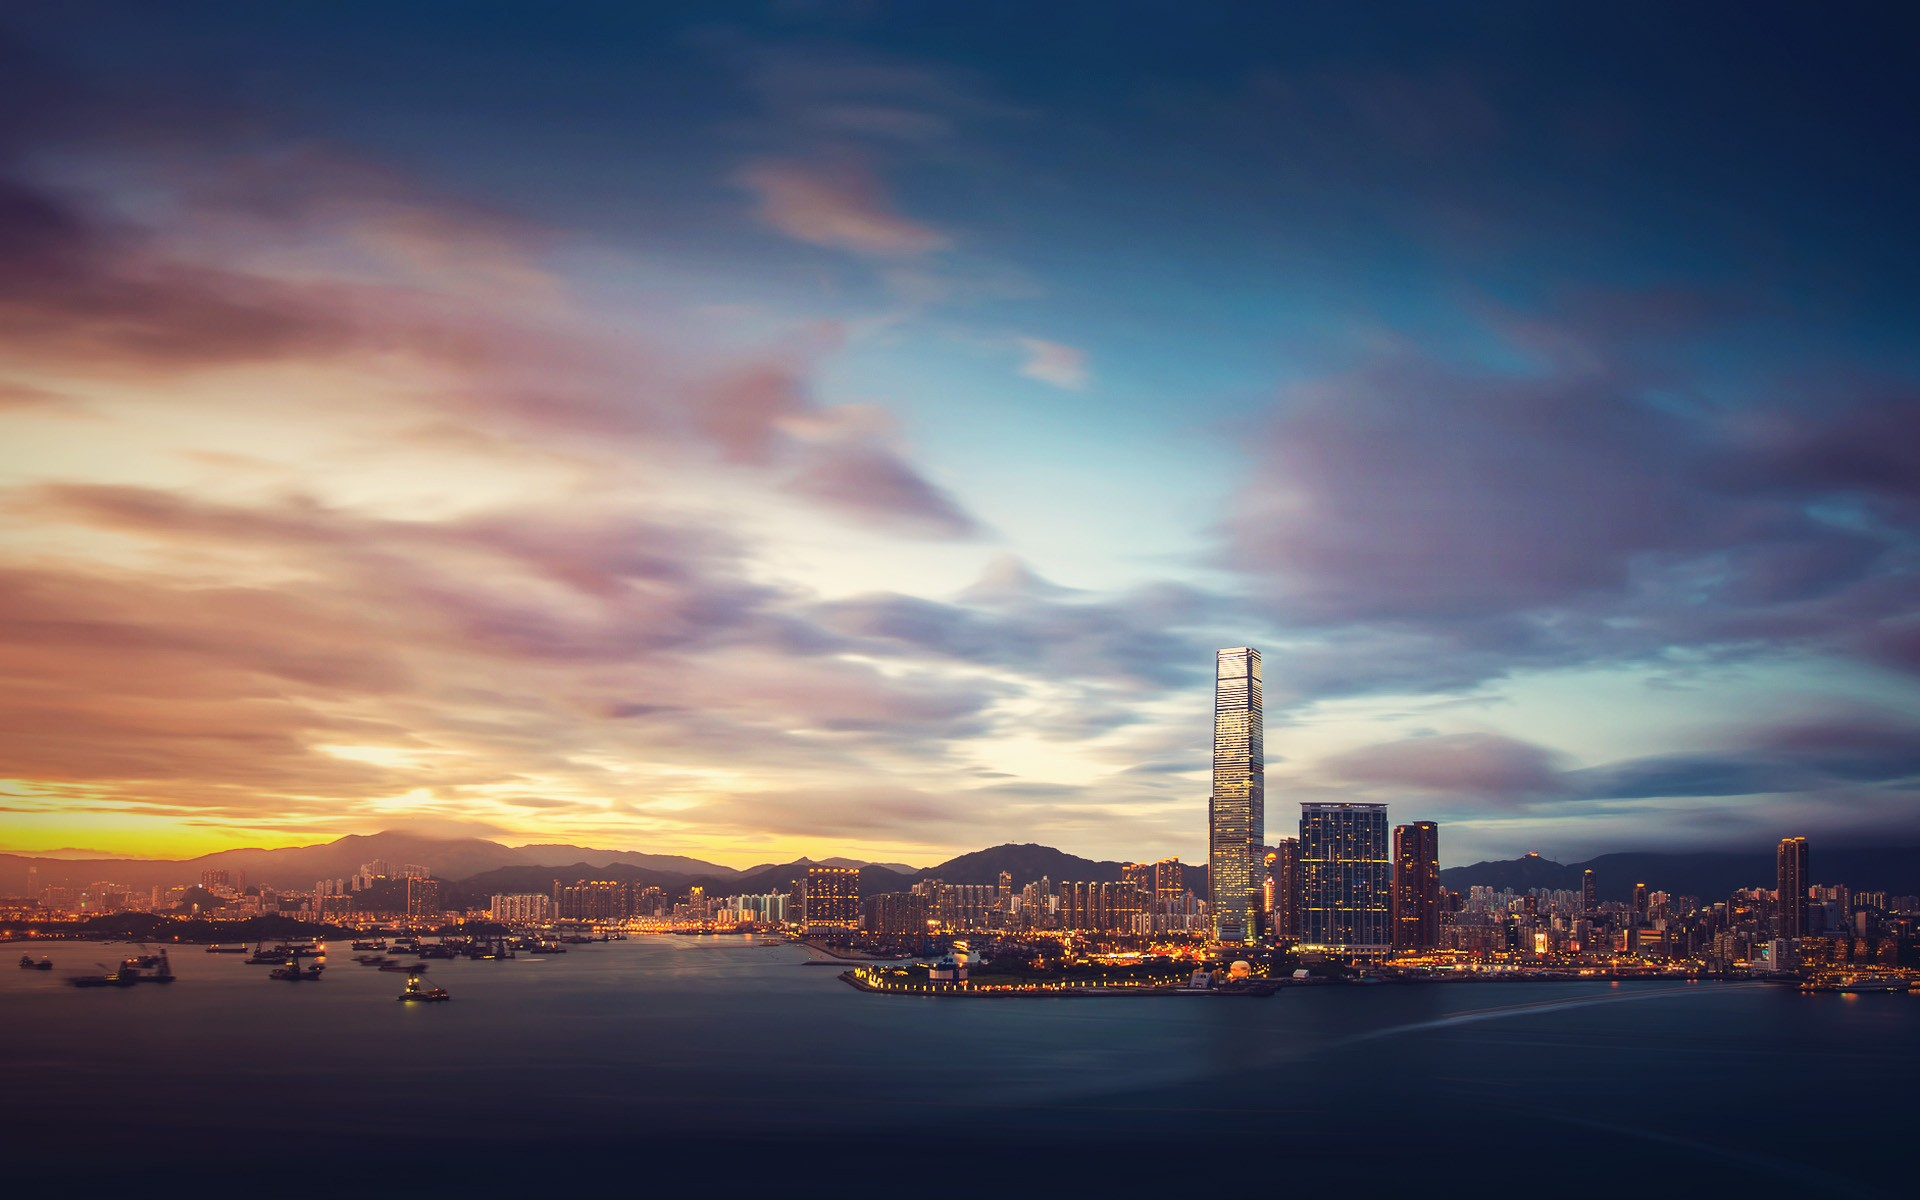 Fall Hills Wallpaper Daily Wallpaper Hong Kong Sunset I Like To Waste My Time